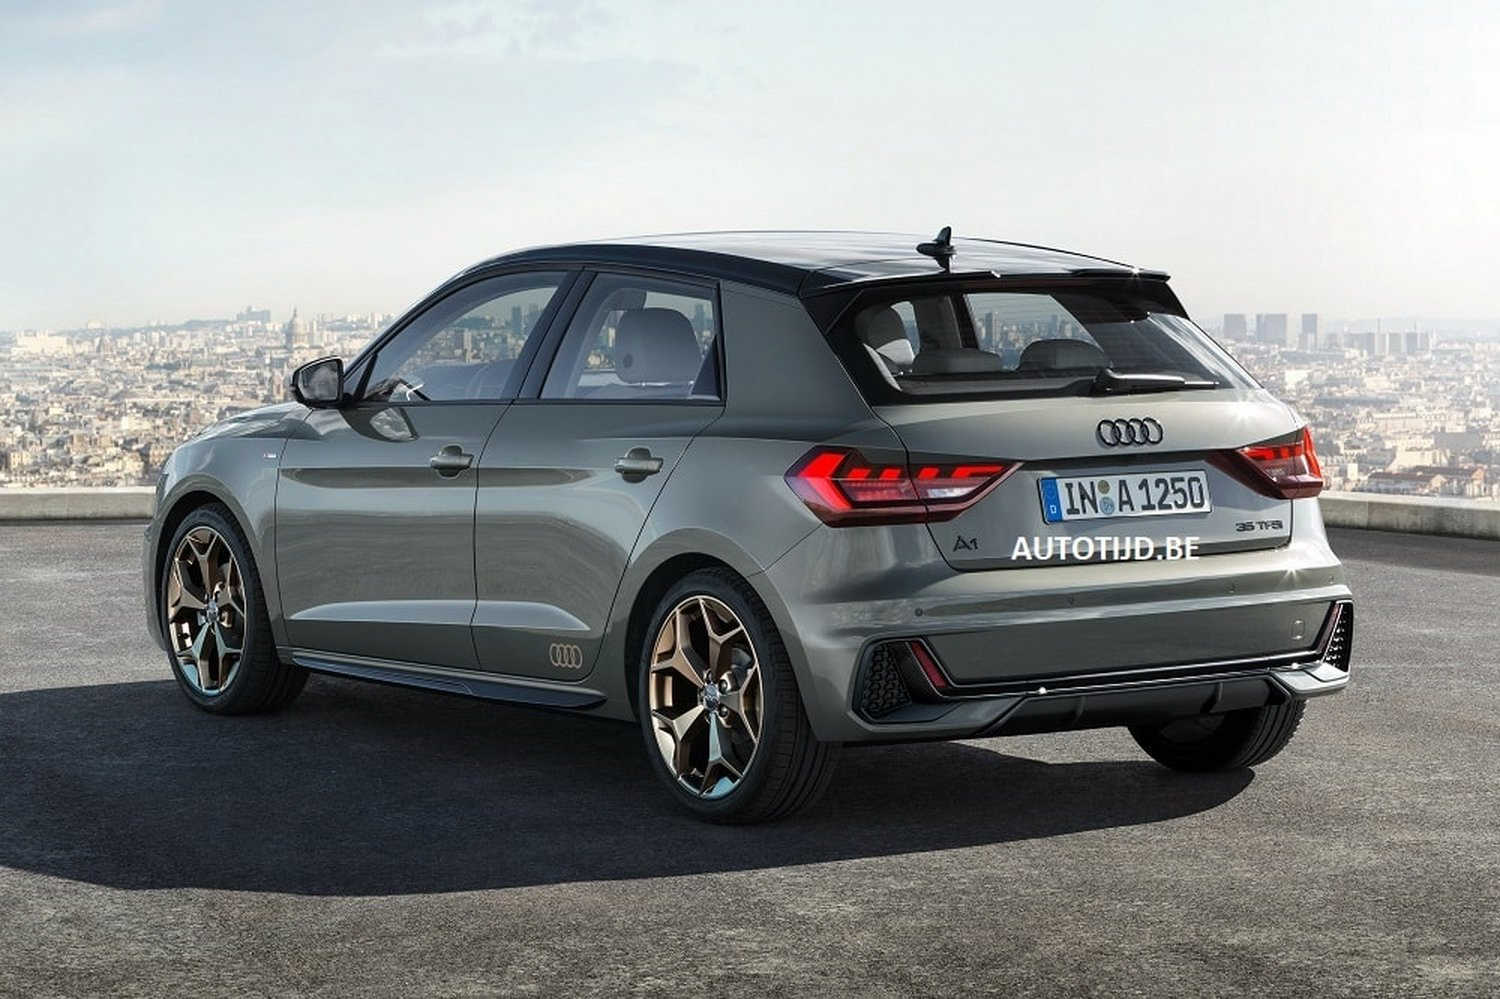 Audi A1 New Model >> 2019 Audi A1 Leaked Official Photos Reveal Sporty Design - autoevolution